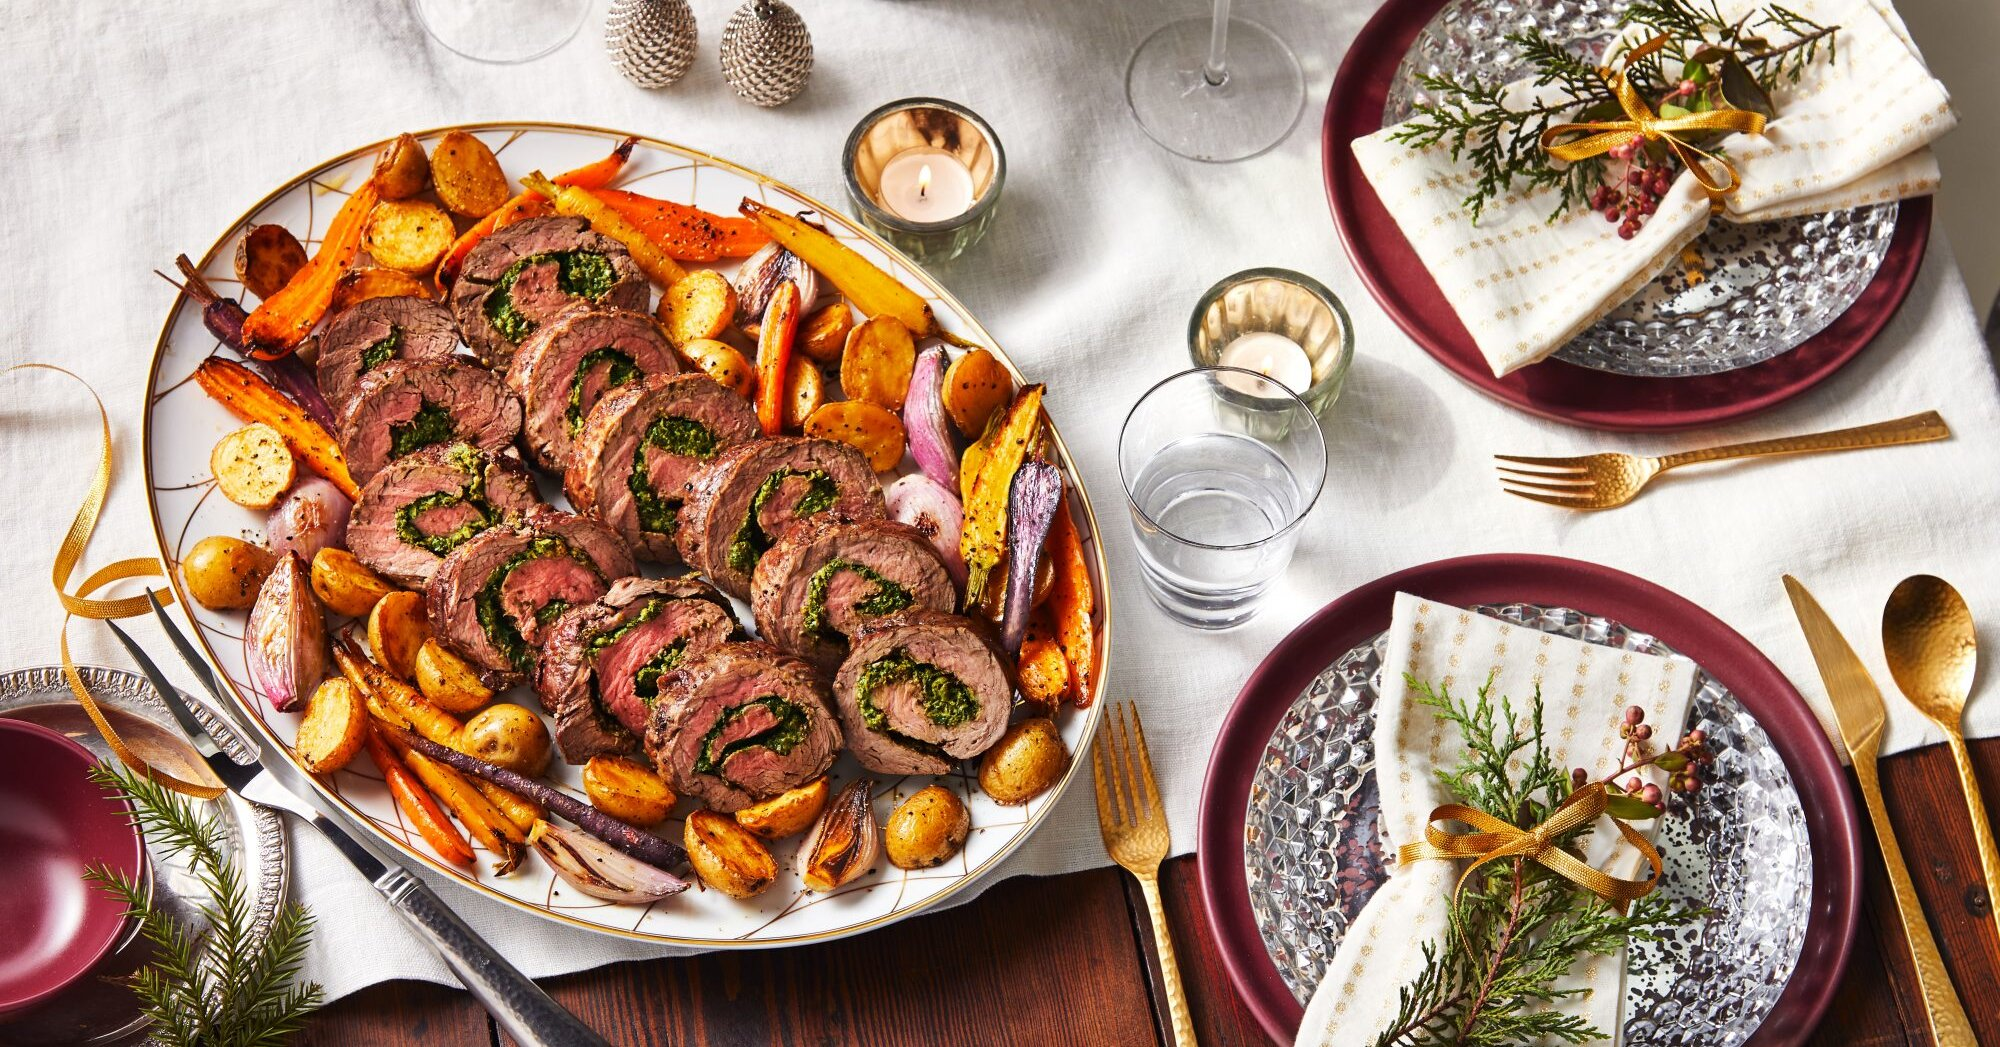 Stuffed Beef Tenderloin with Roasted Vegetables